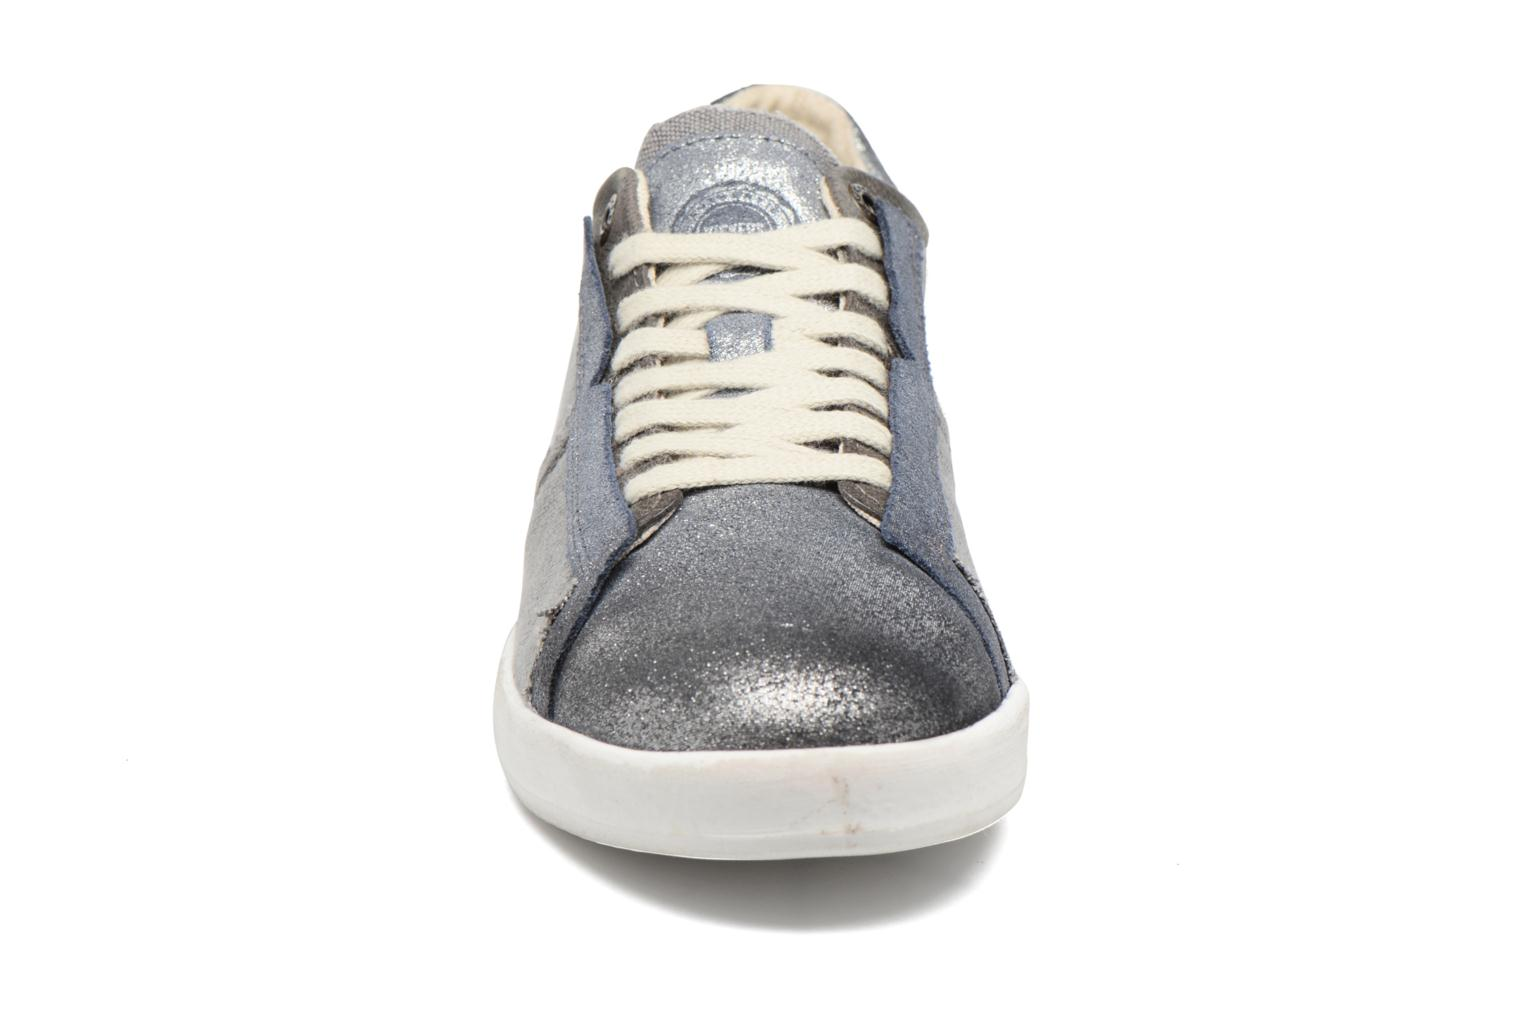 Happystar Gris Metalise